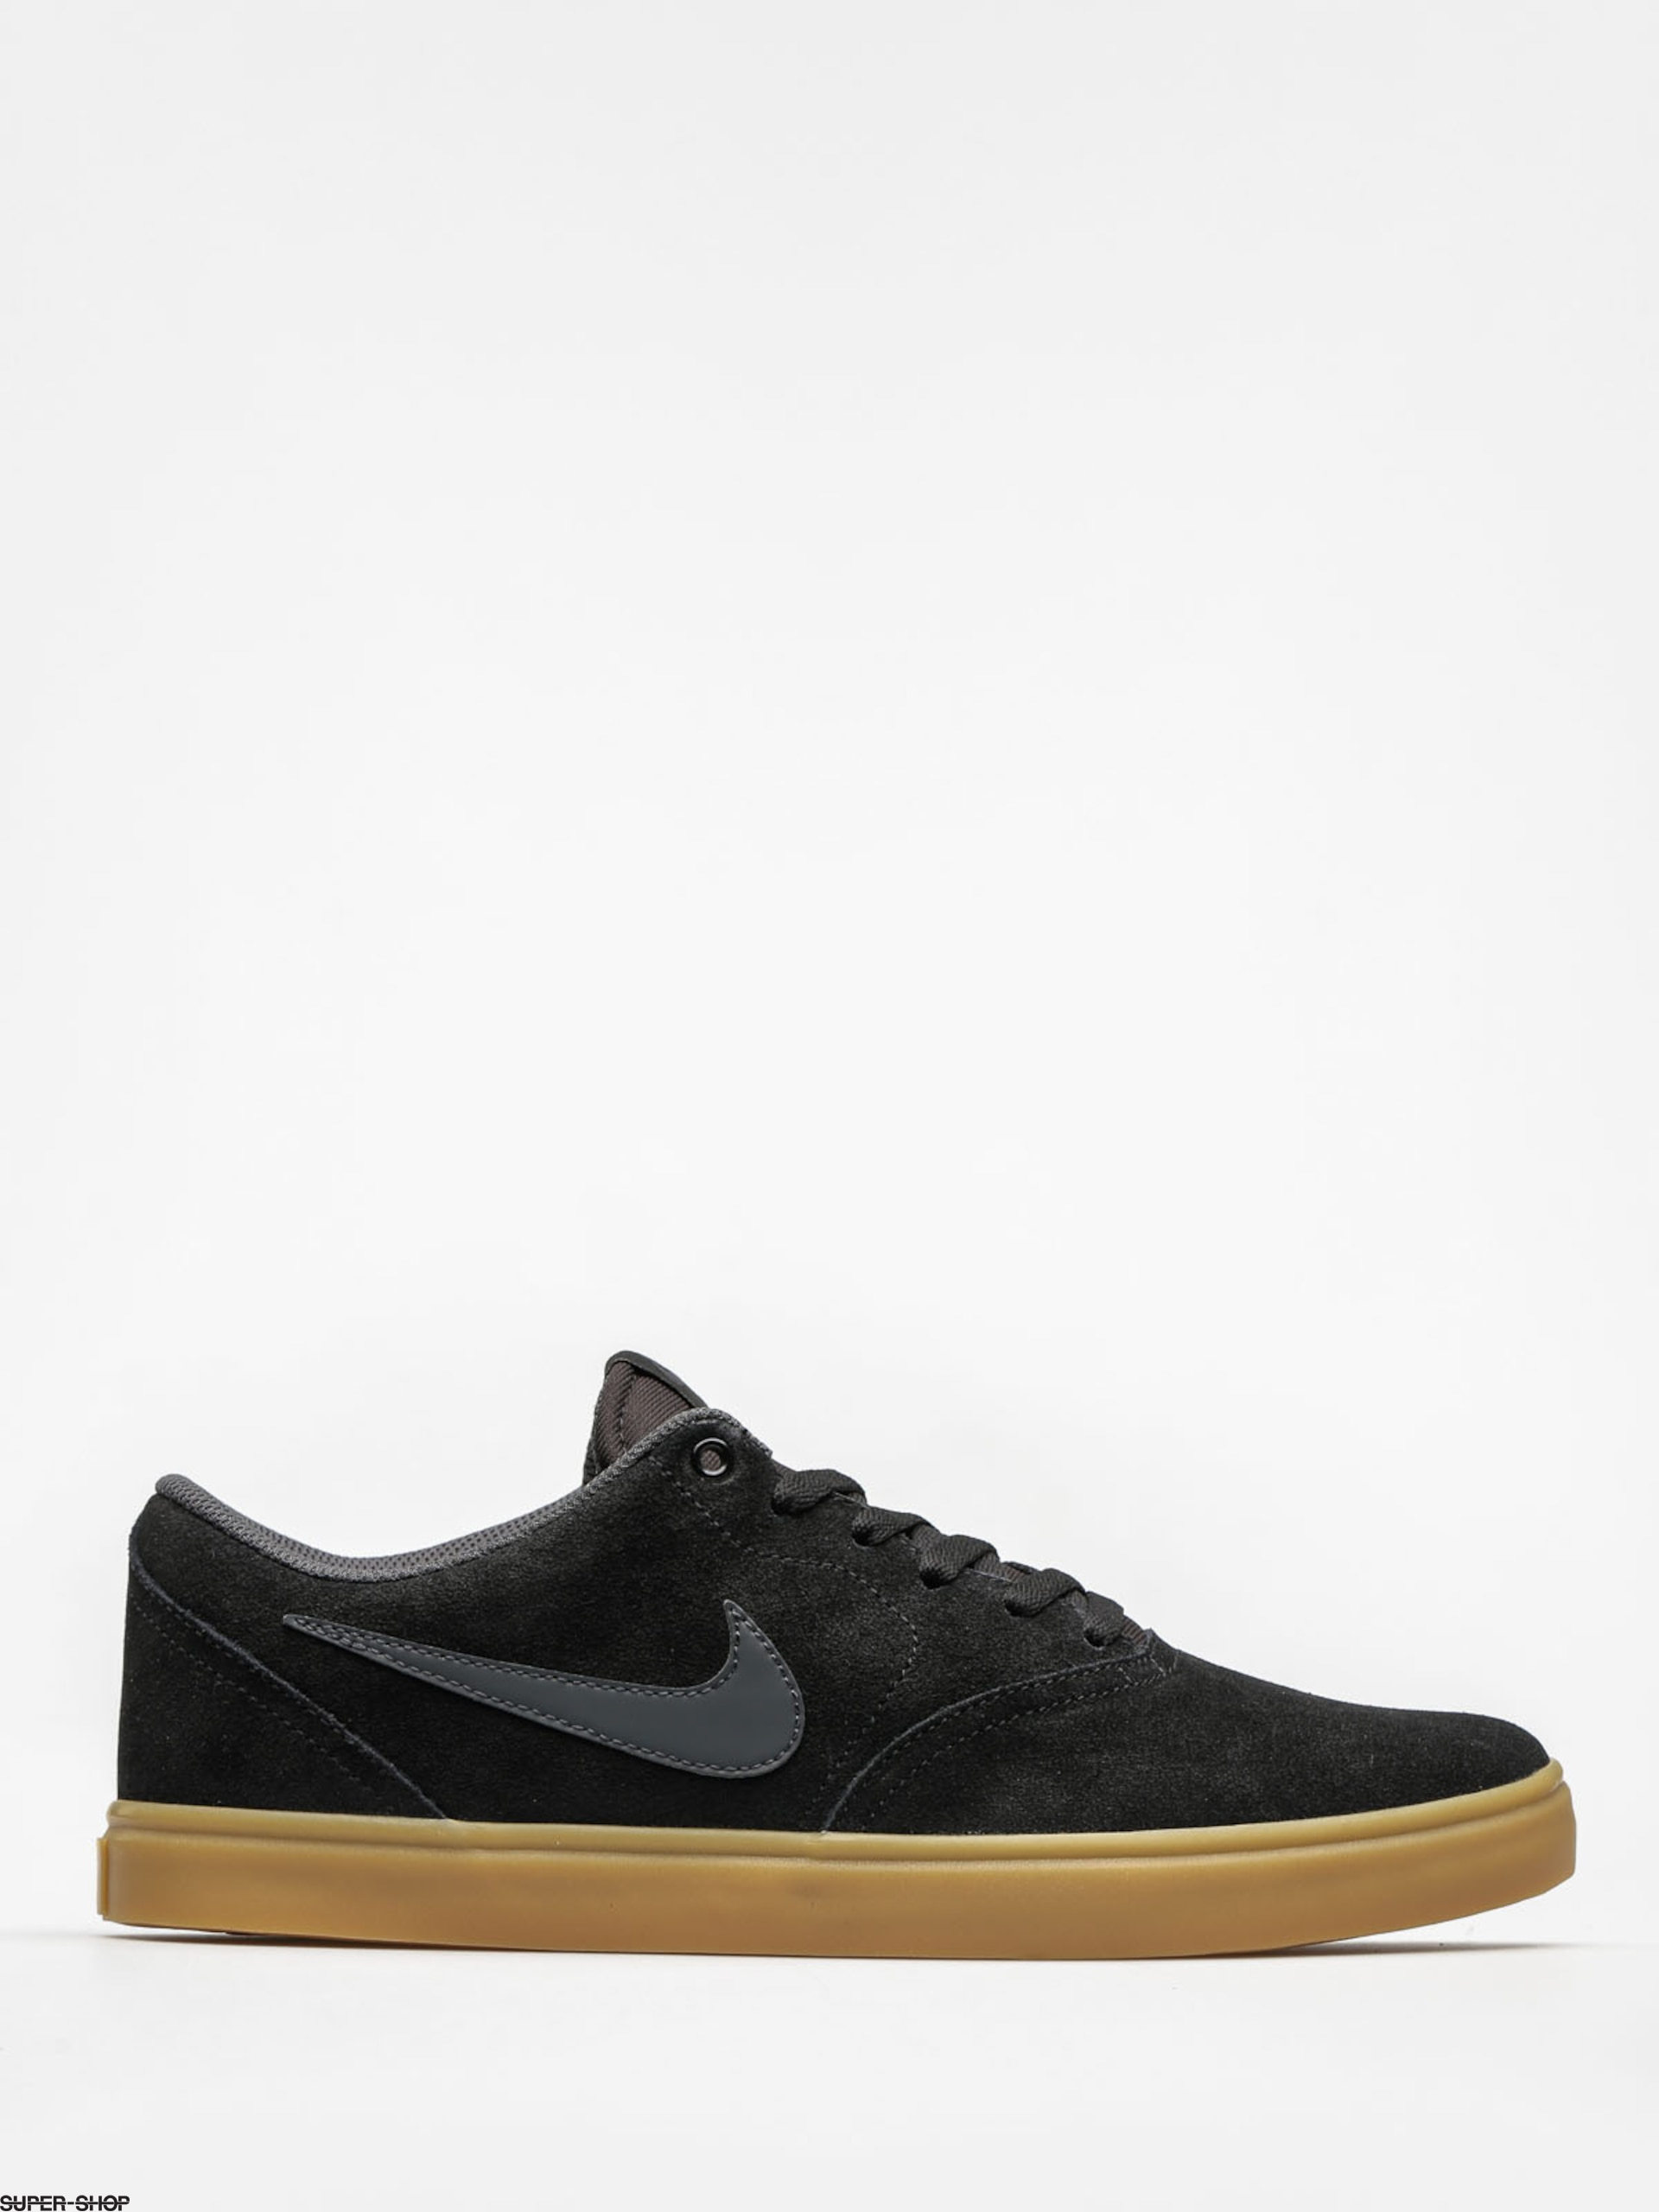 4caefad3d4 Nike SB Shoes Check Solar (bkack anthracite gum dark brown)